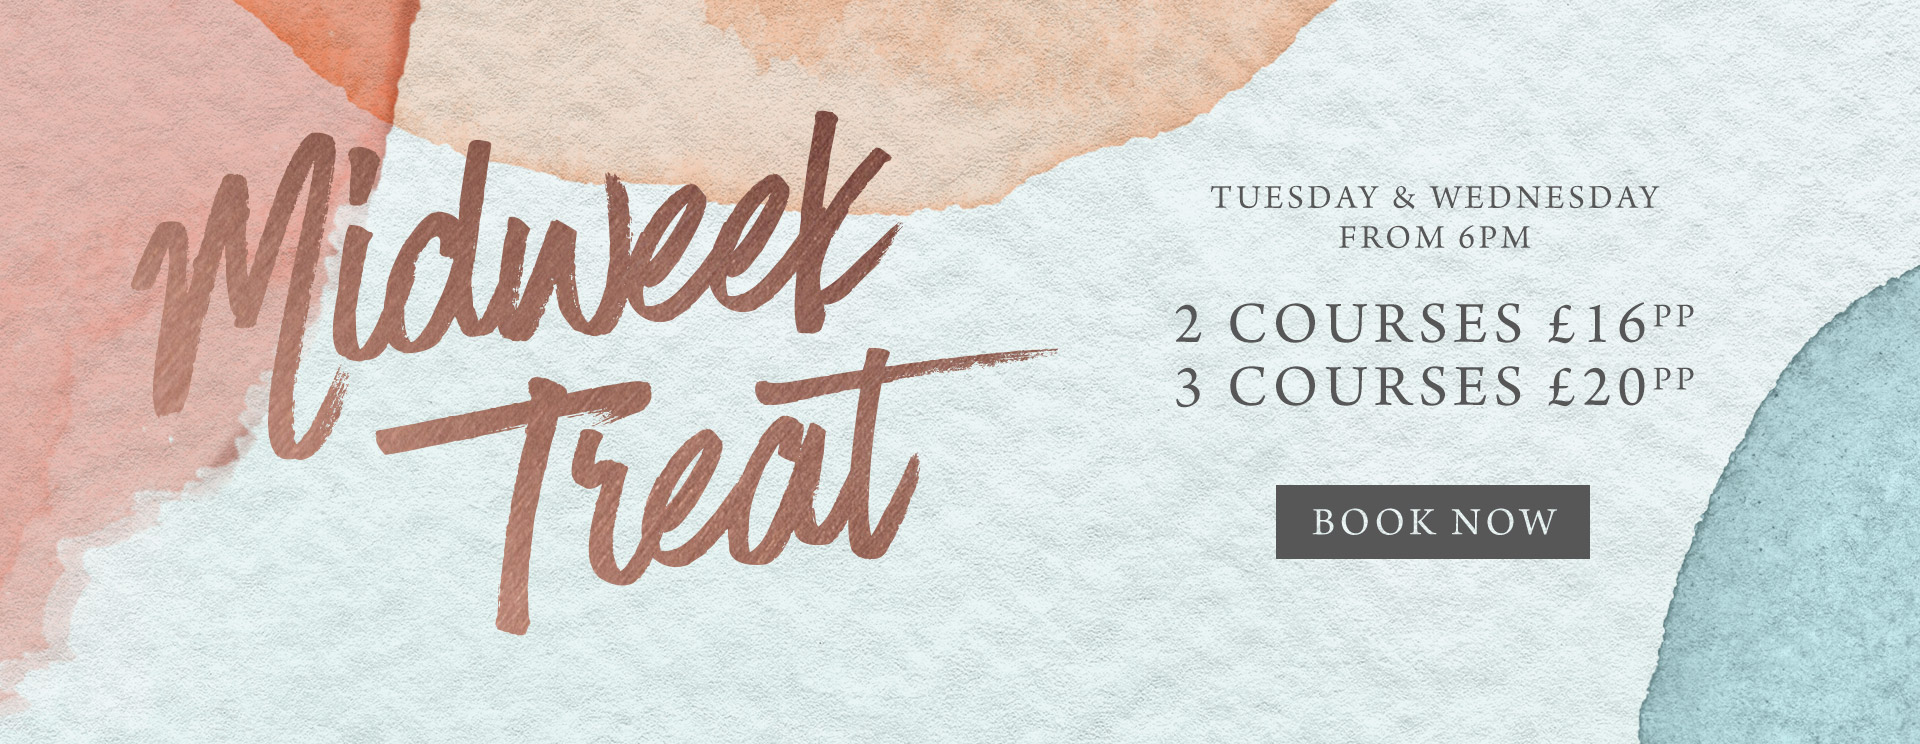 Midweek treat at The Fox - Book now